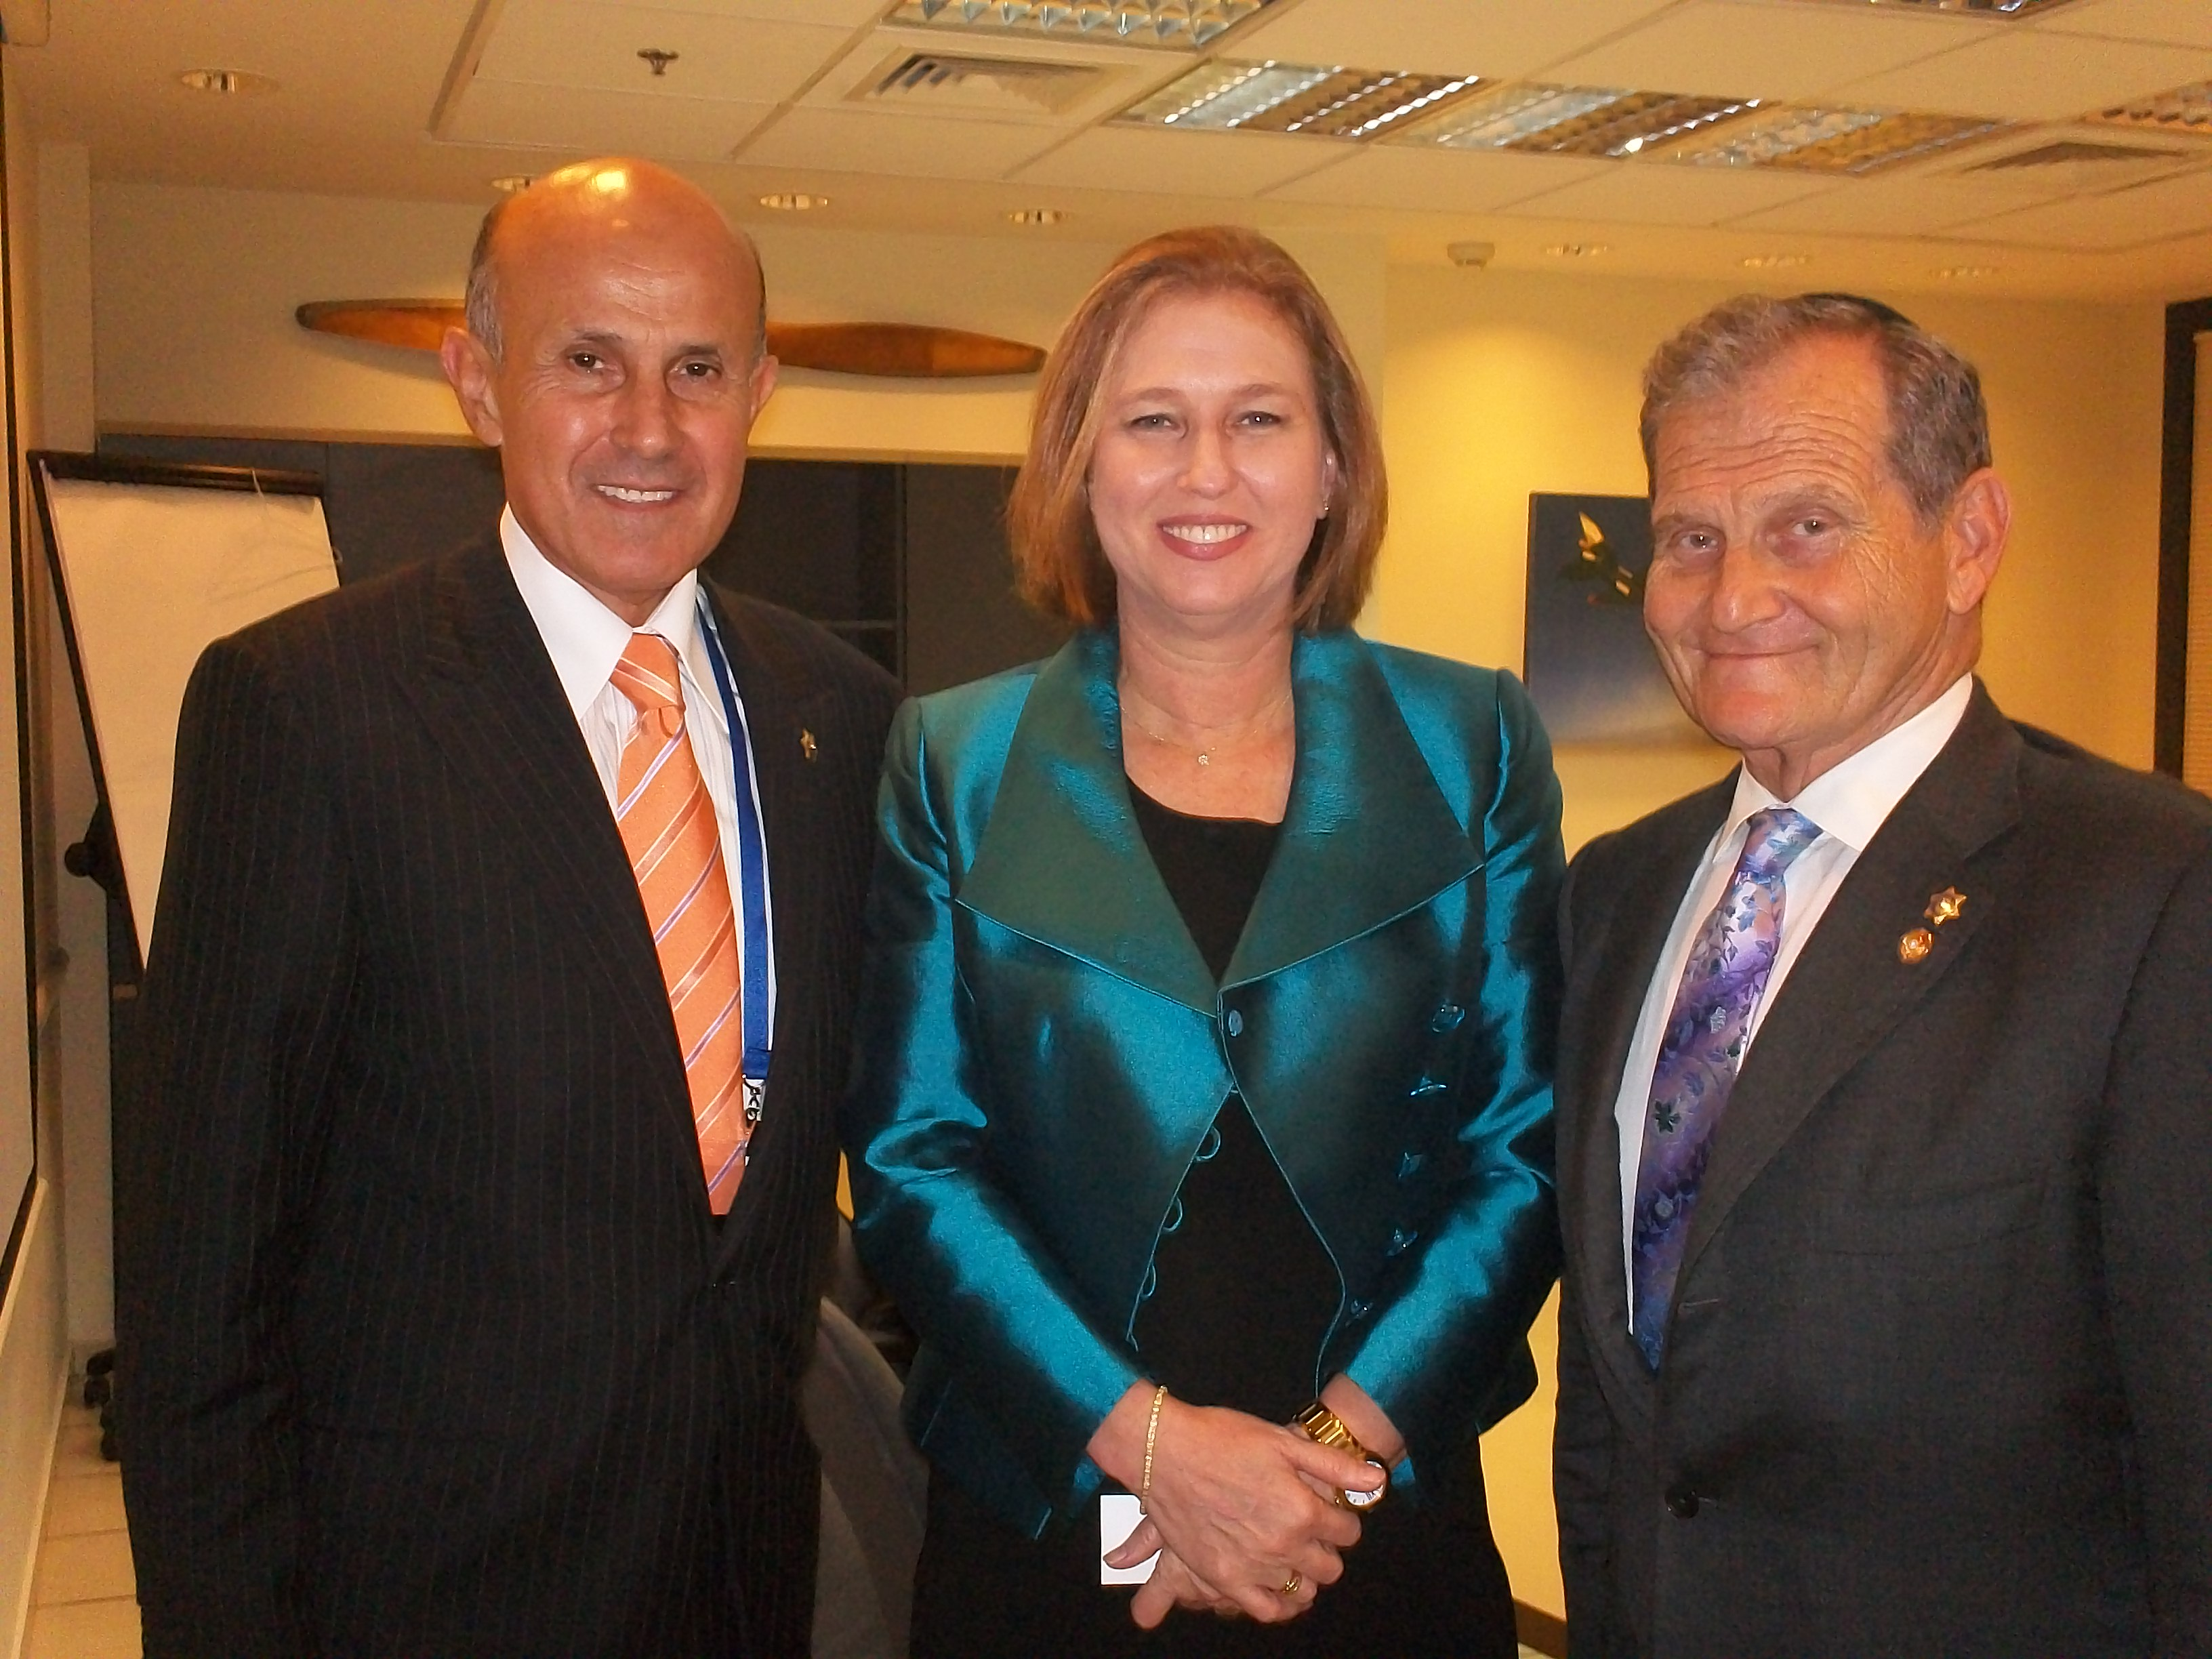 Center: Israeli Opposition Leader Tzipi Livin, Left: LA County Sheriff Lee Baca, Right: Commissioner Andrew Friedman